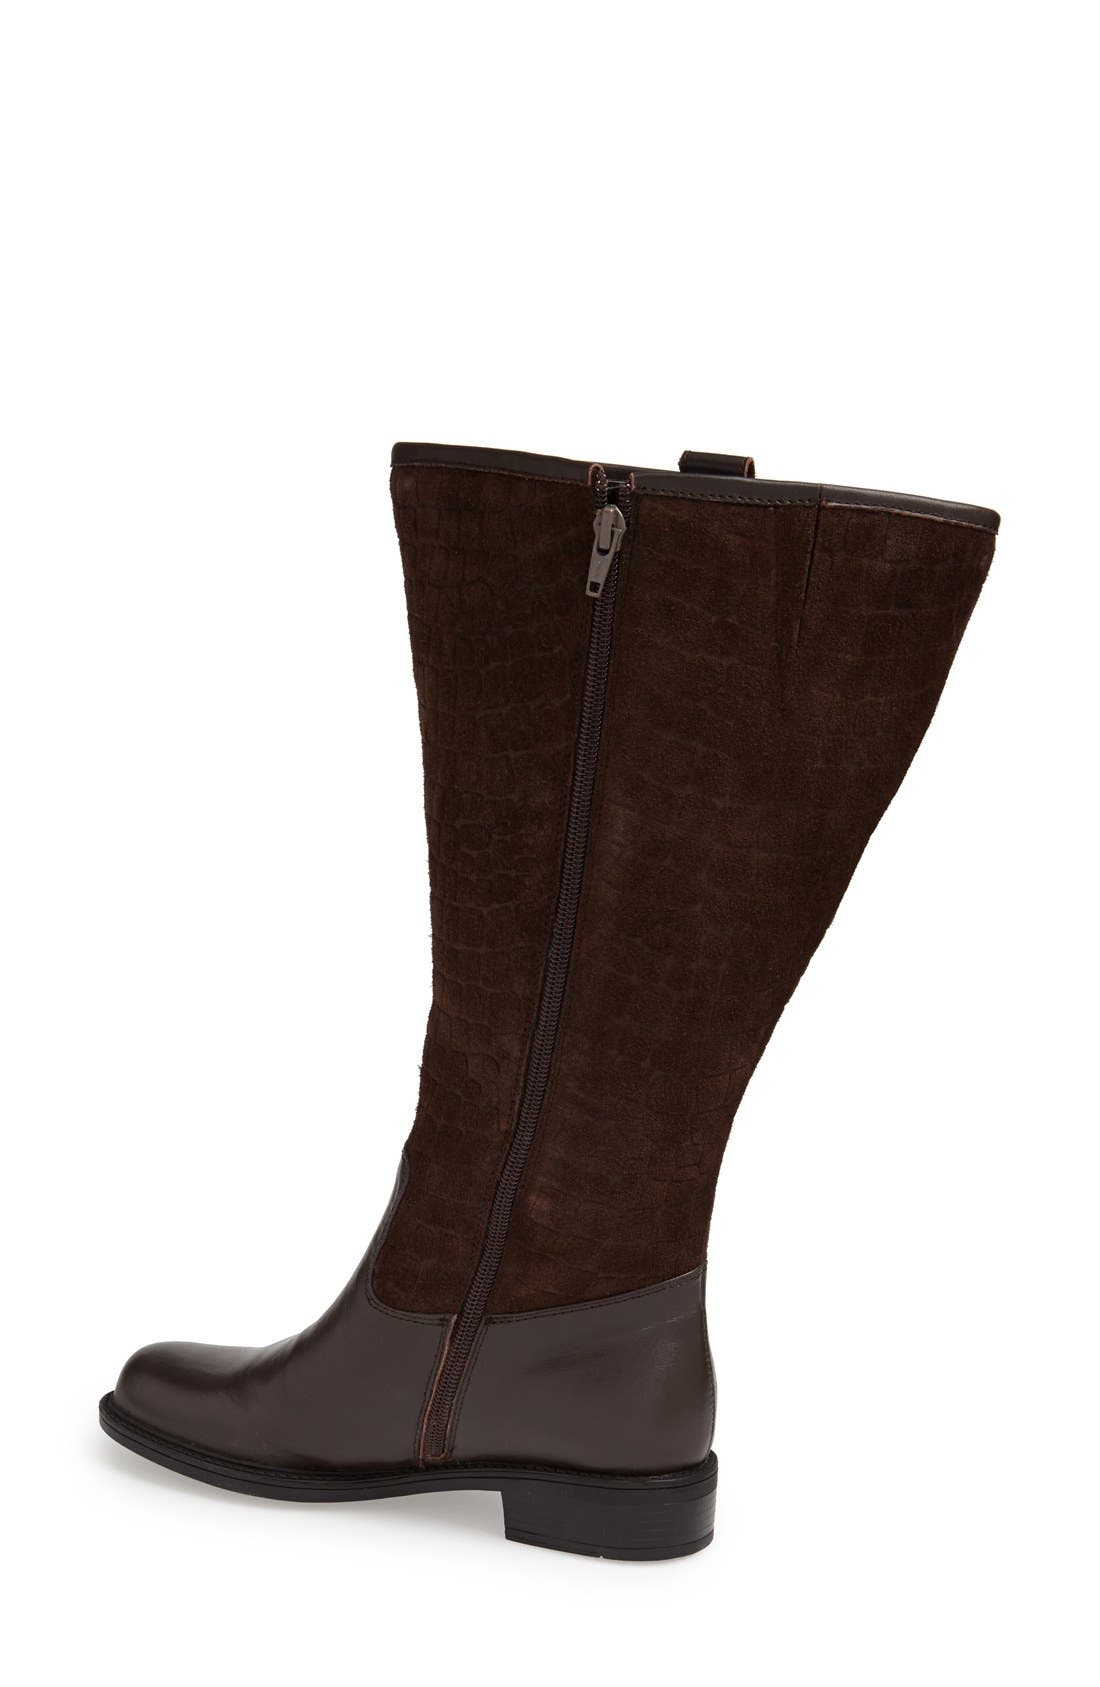 Alternate Image 2  - David Tate 'Best' Calfskin Leather & Suede Boot (Extra Wide Calf)